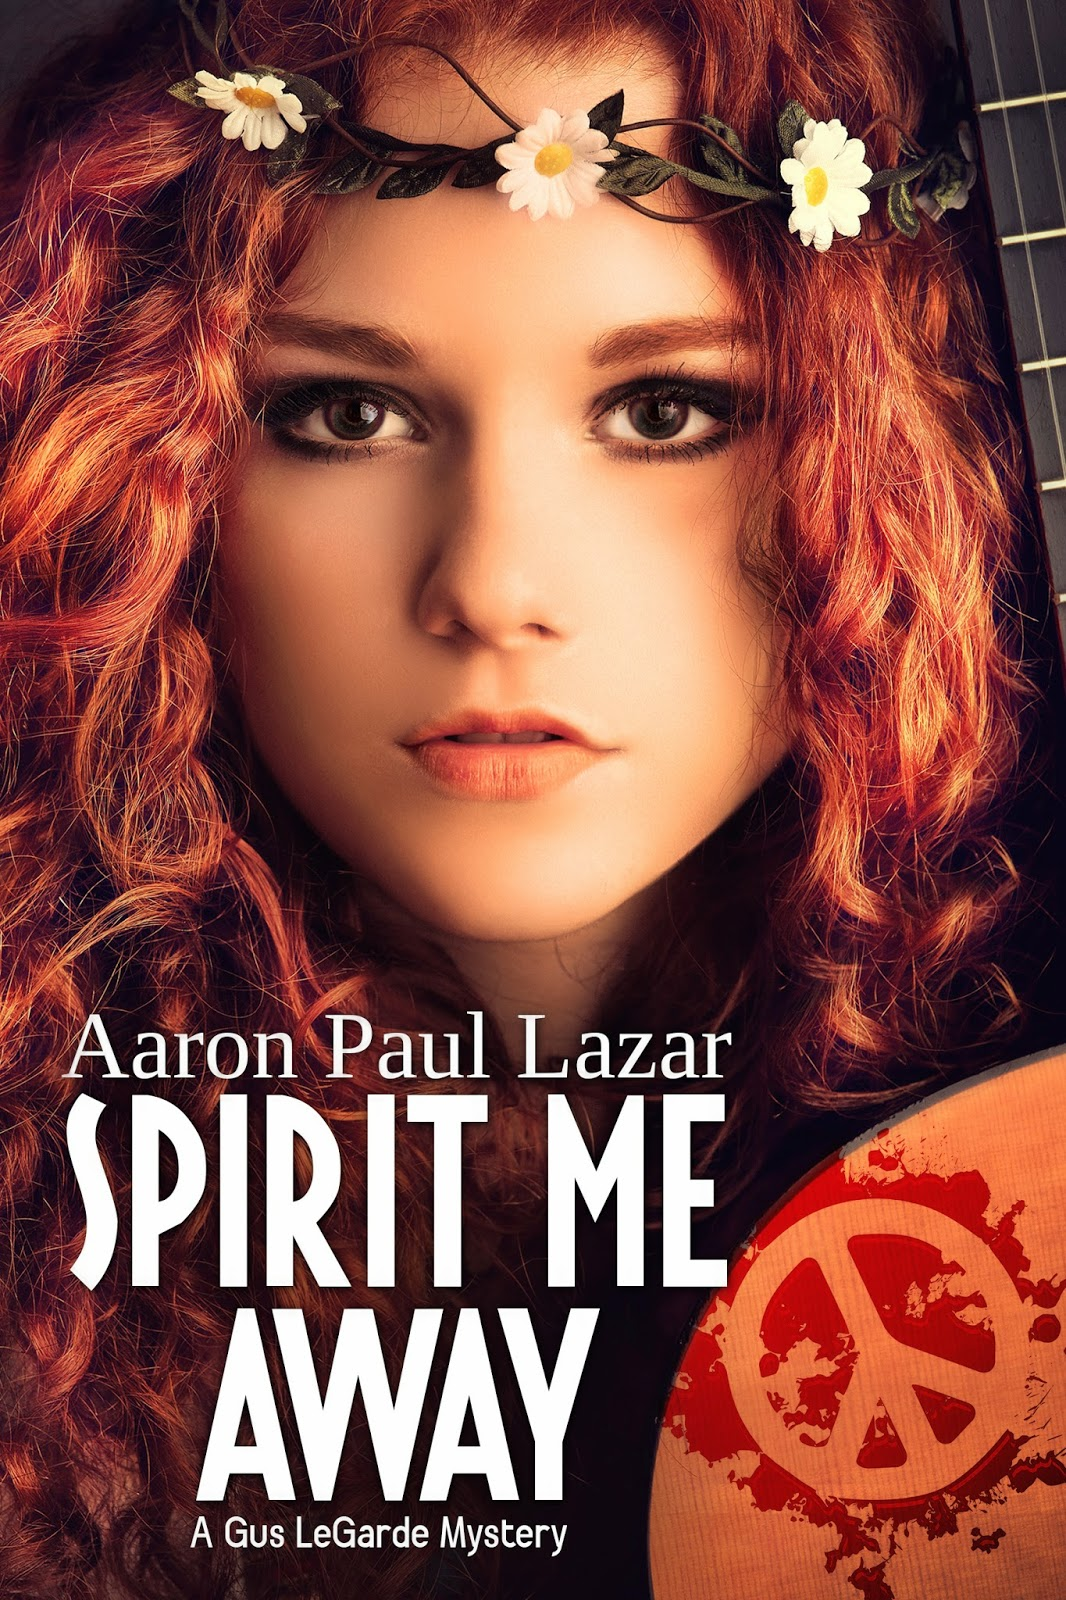 http://www.amazon.com/Spirit-Me-Away-LeGarde-Mysteries-ebook/dp/B00K7RA8QW/ref=sr_1_2?s=digital-text&ie=UTF8&qid=1400147007&sr=1-2&keywords=spirit+me+away